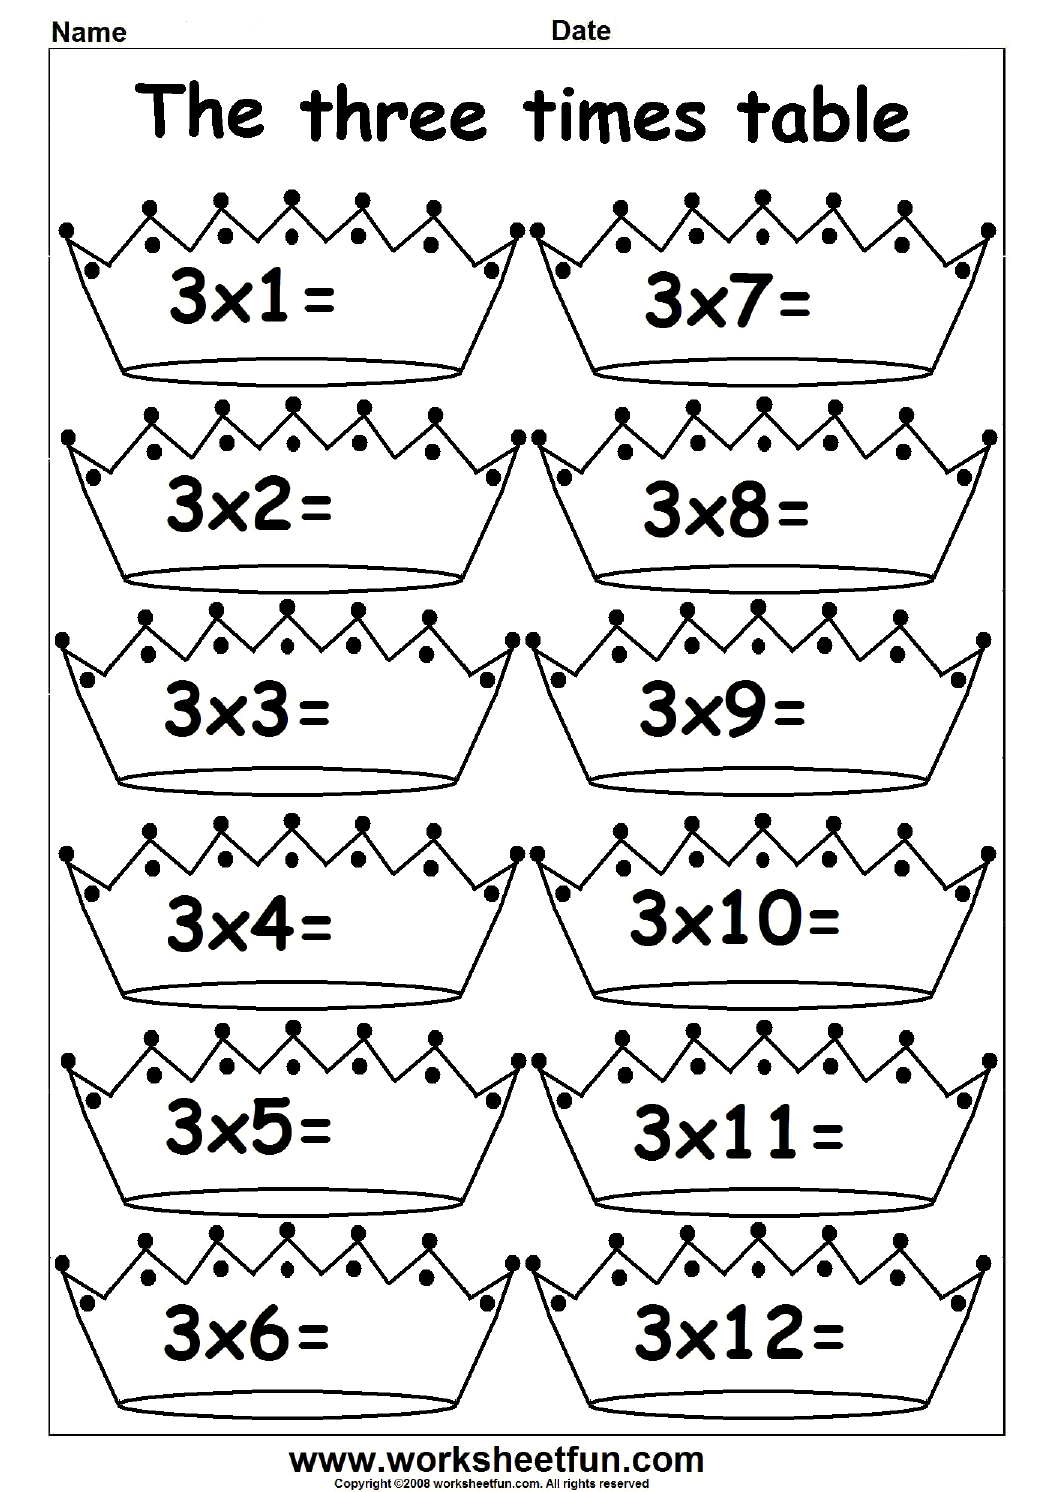 Search Results For 3 Times Table Colouring Worksheet